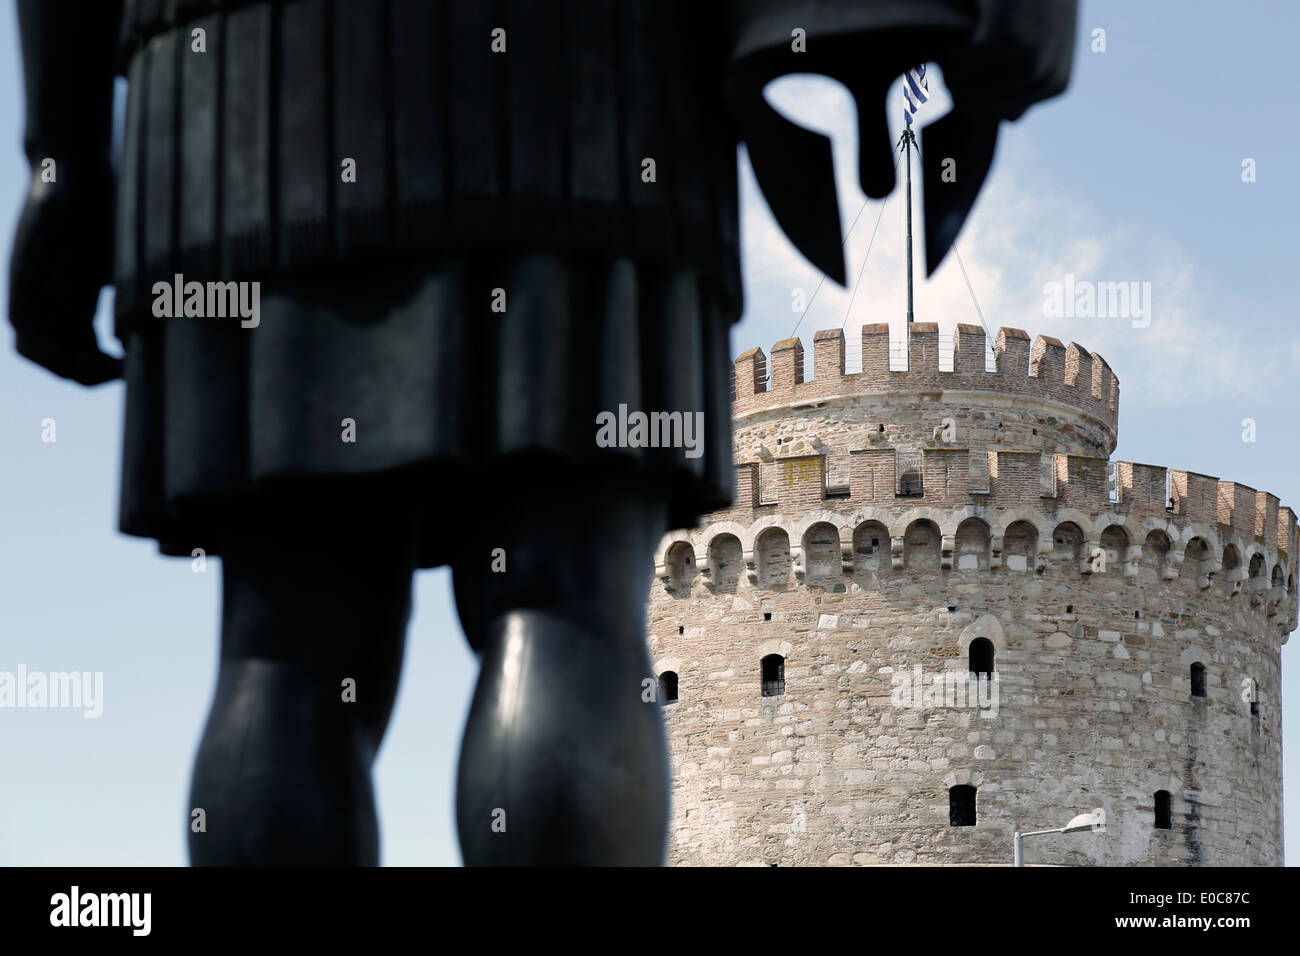 White Tower (Lefkos Pirgos), the landmark of northern Greek city of Thessaloniki as seen behind a Macedonian warrior. - Stock Image